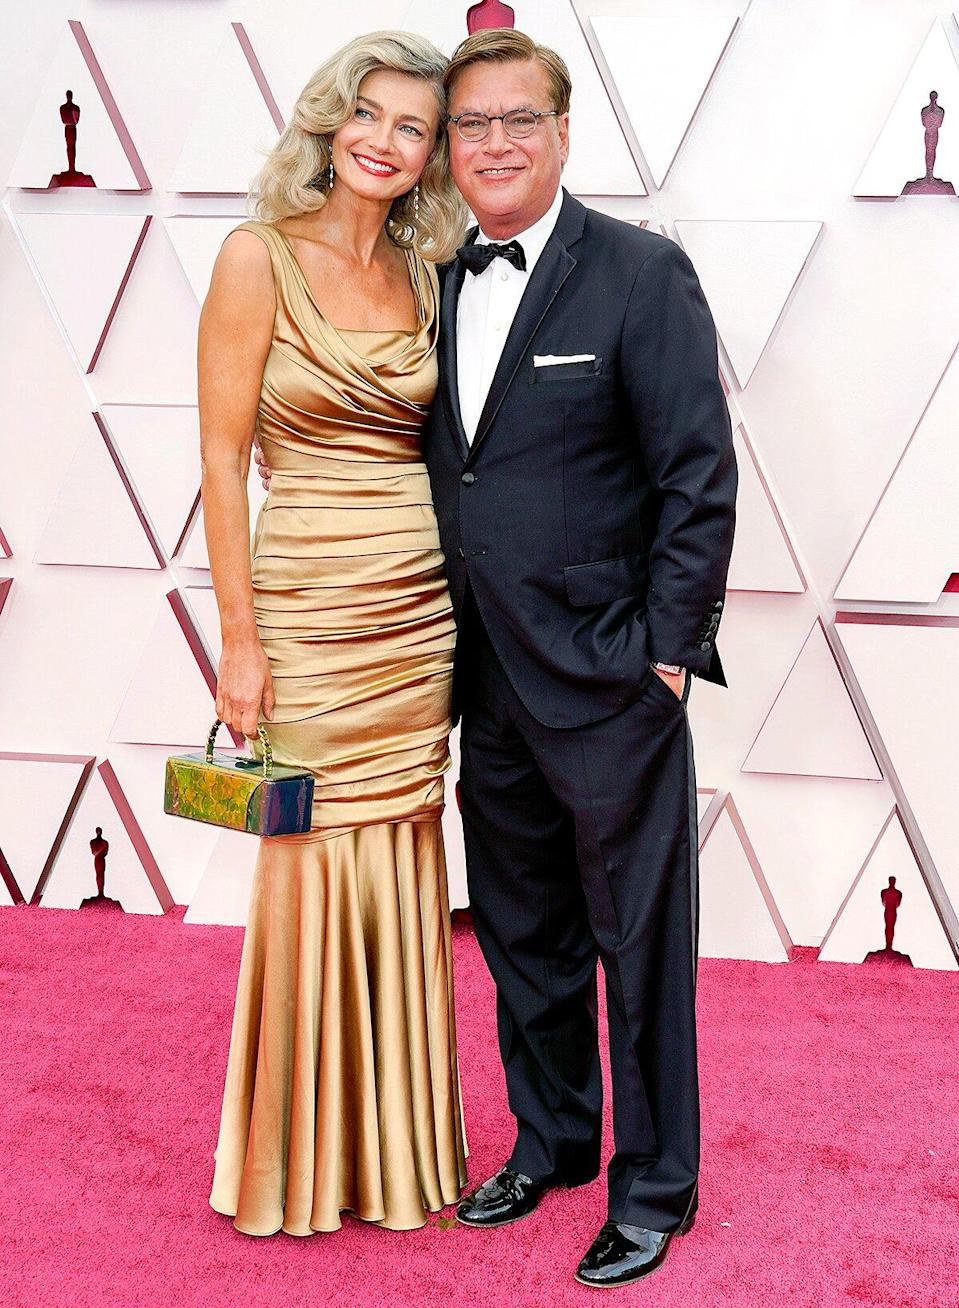 Paulina Porizkova (L) and Aaron Sorkin attends the 93rd Annual Academy Awards at Union Station on April 25, 2021 in Los Angeles, California.